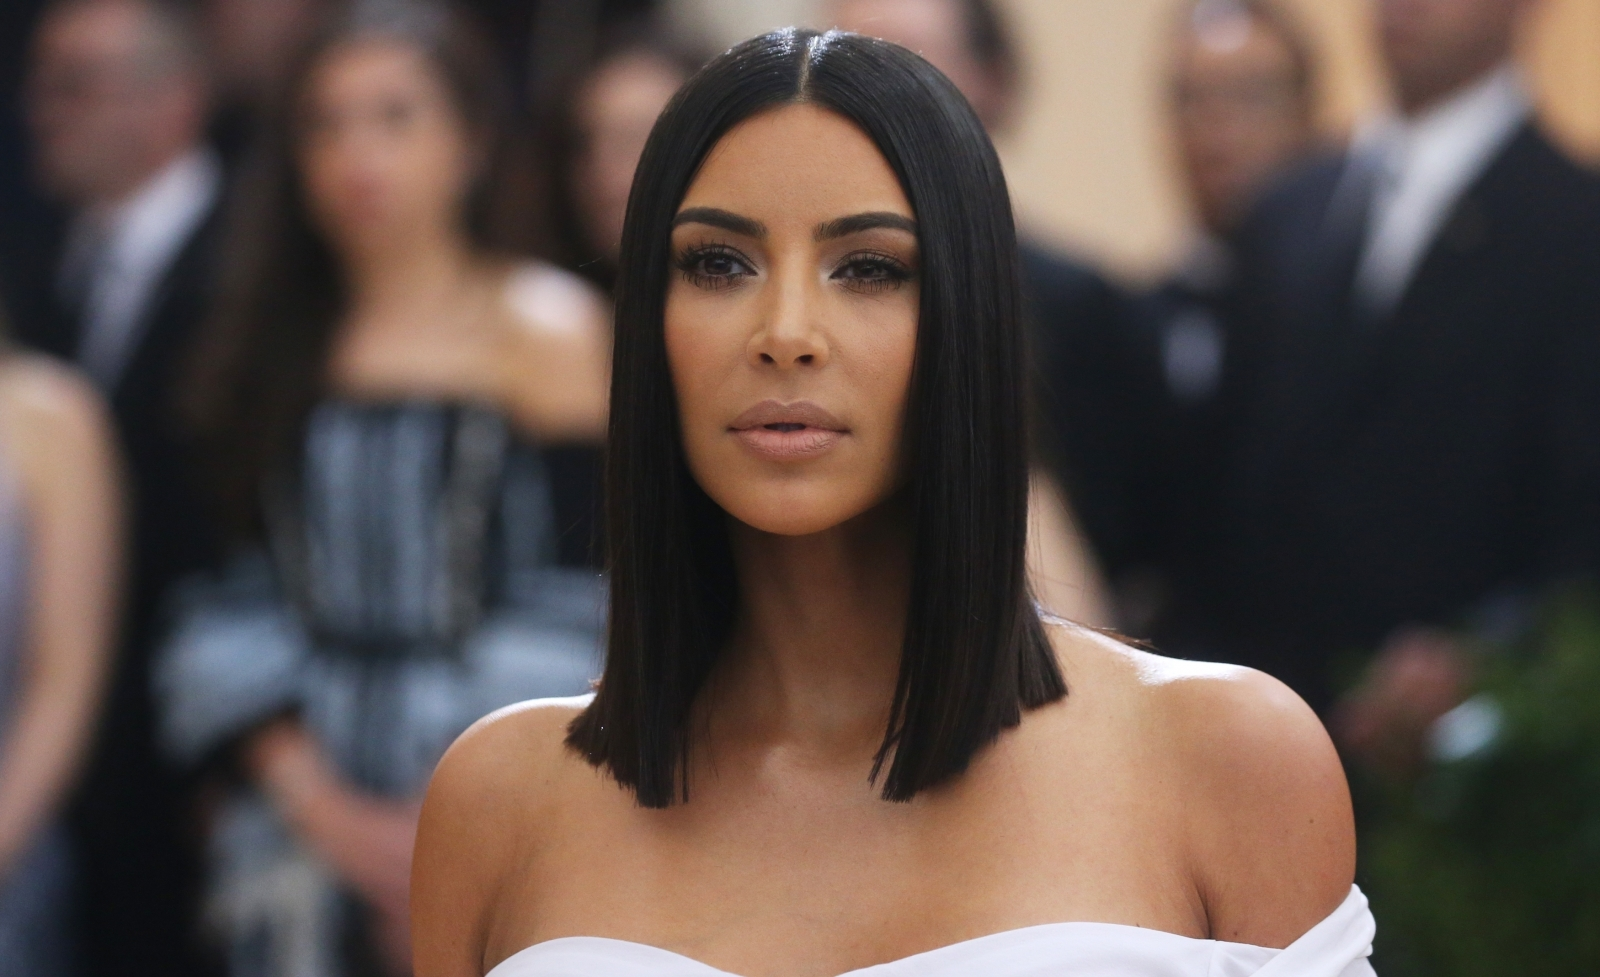 How a braless Kim Kardashian is leaving fans unimpressed with a throwback photo